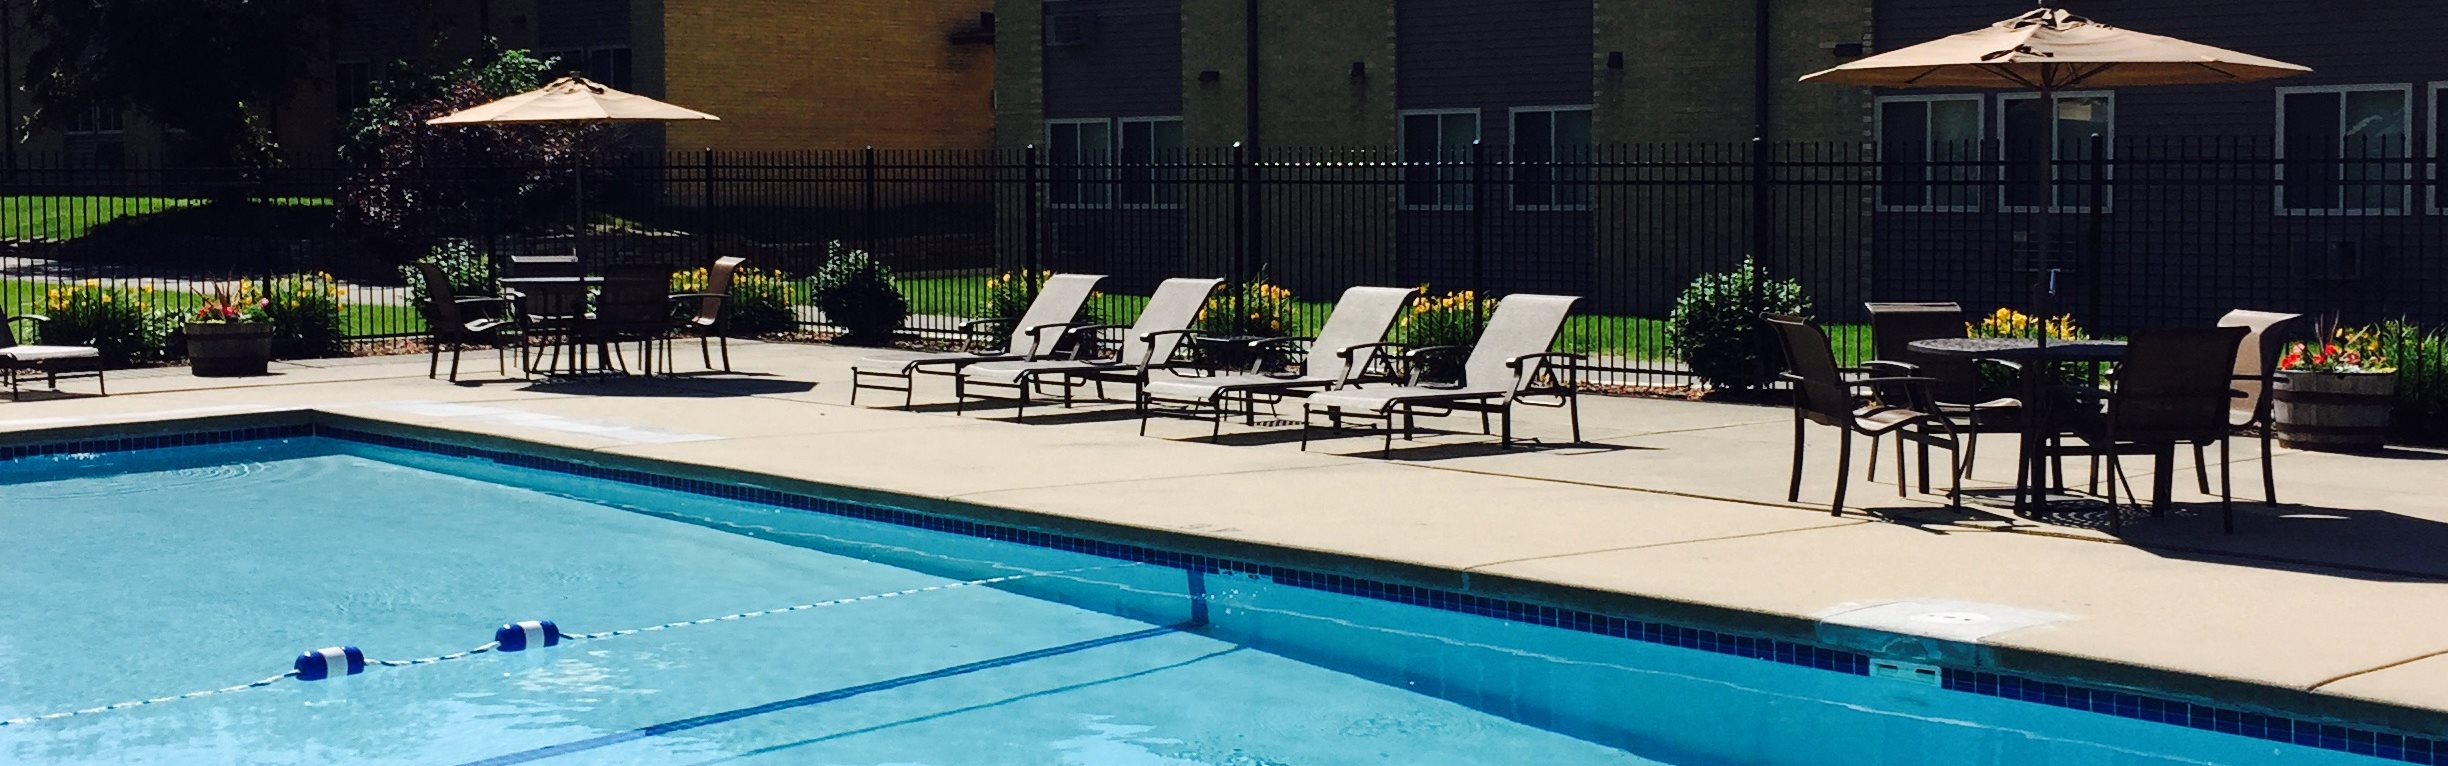 Park Village Apartments | Apartments in Madison, WI